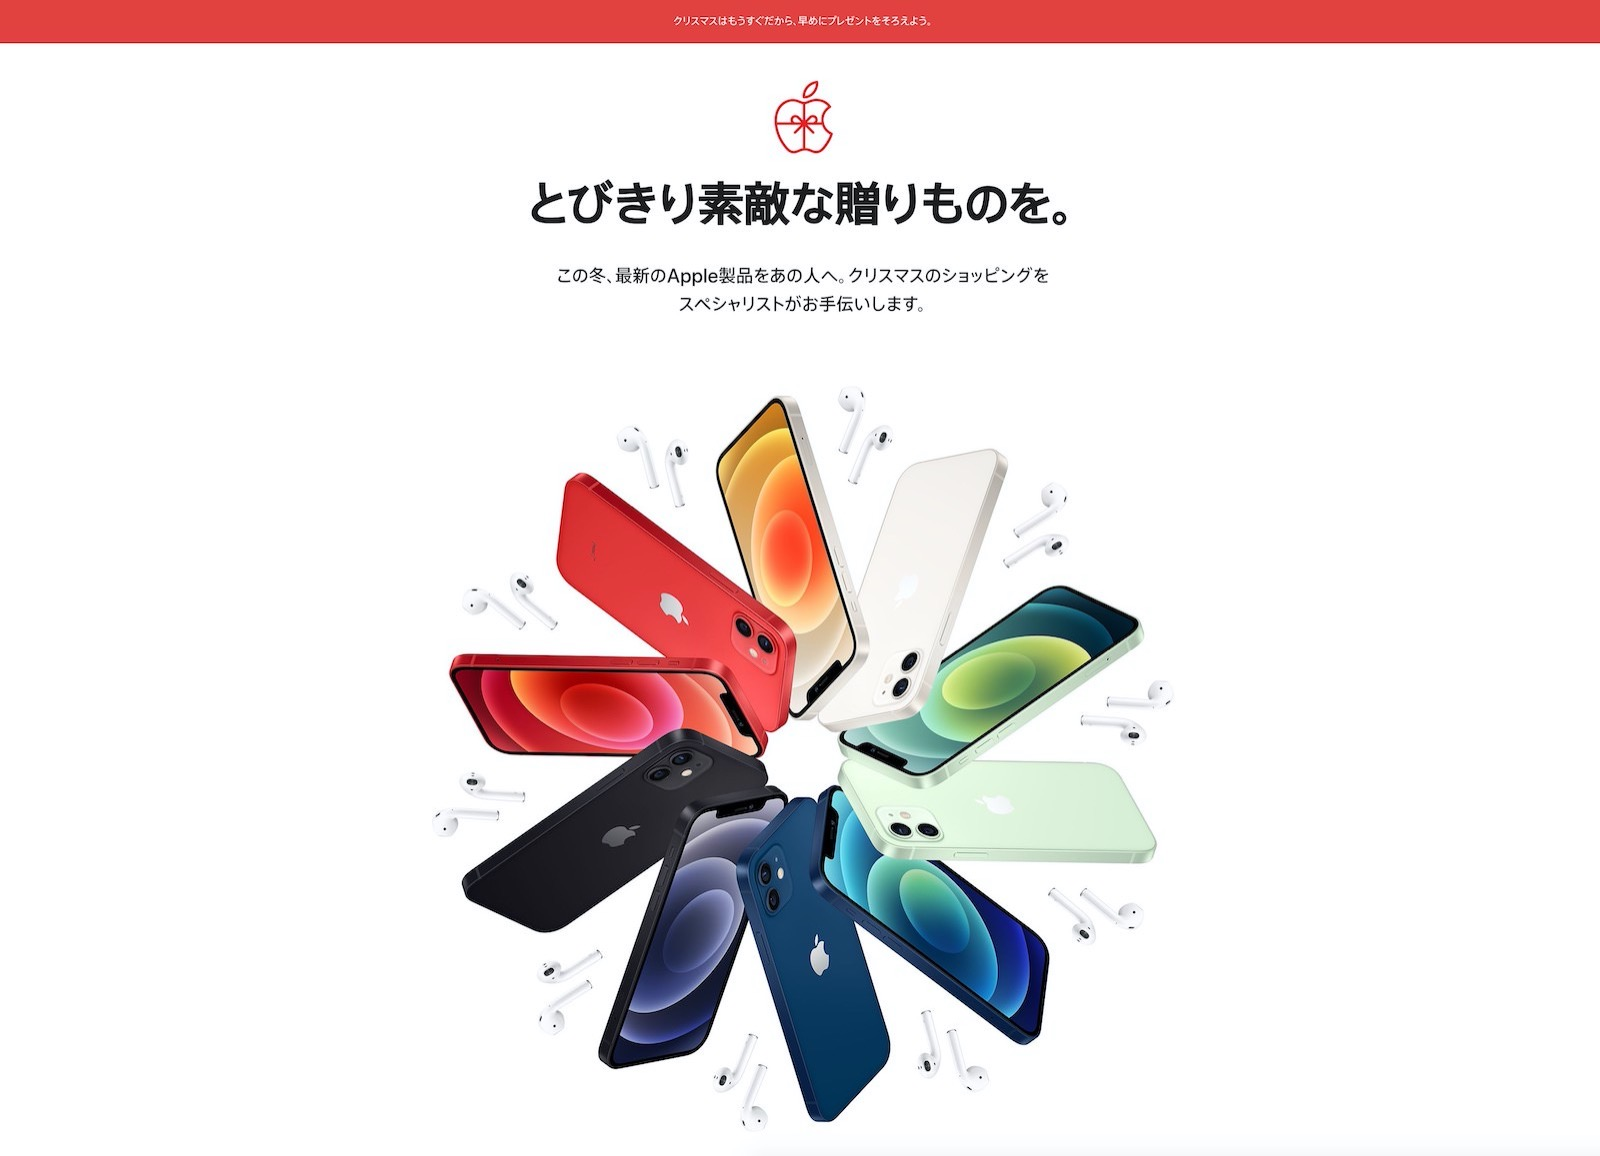 Apple holiday gift page